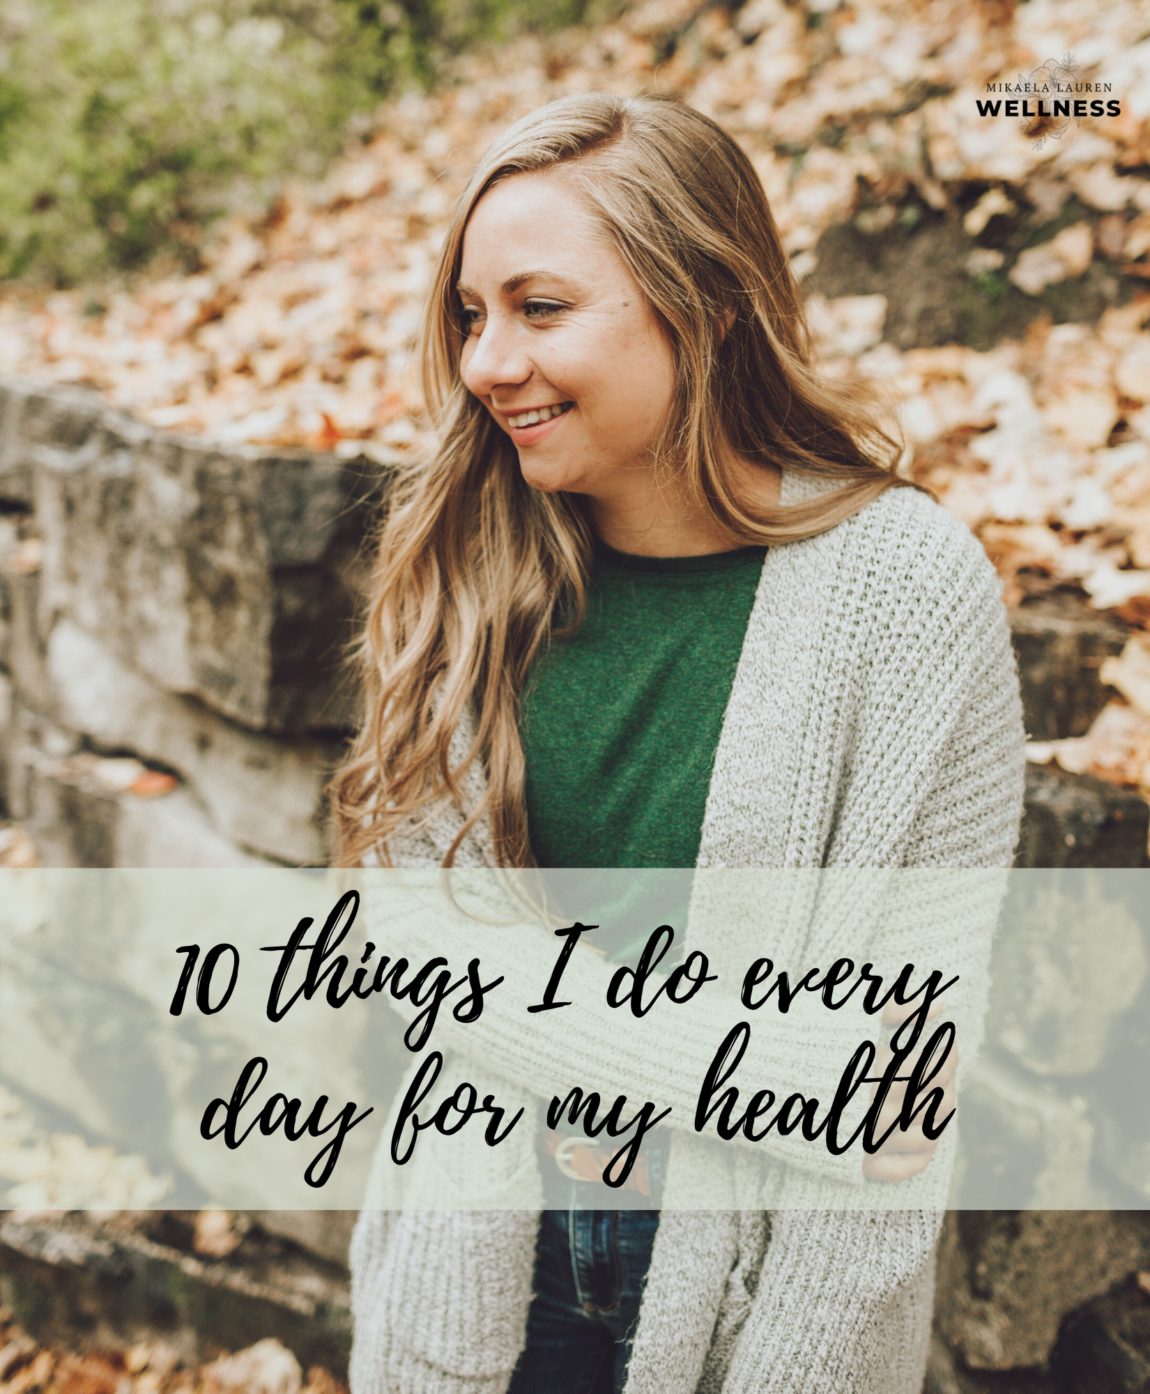 Mikaela Lauren Wellness 10 things